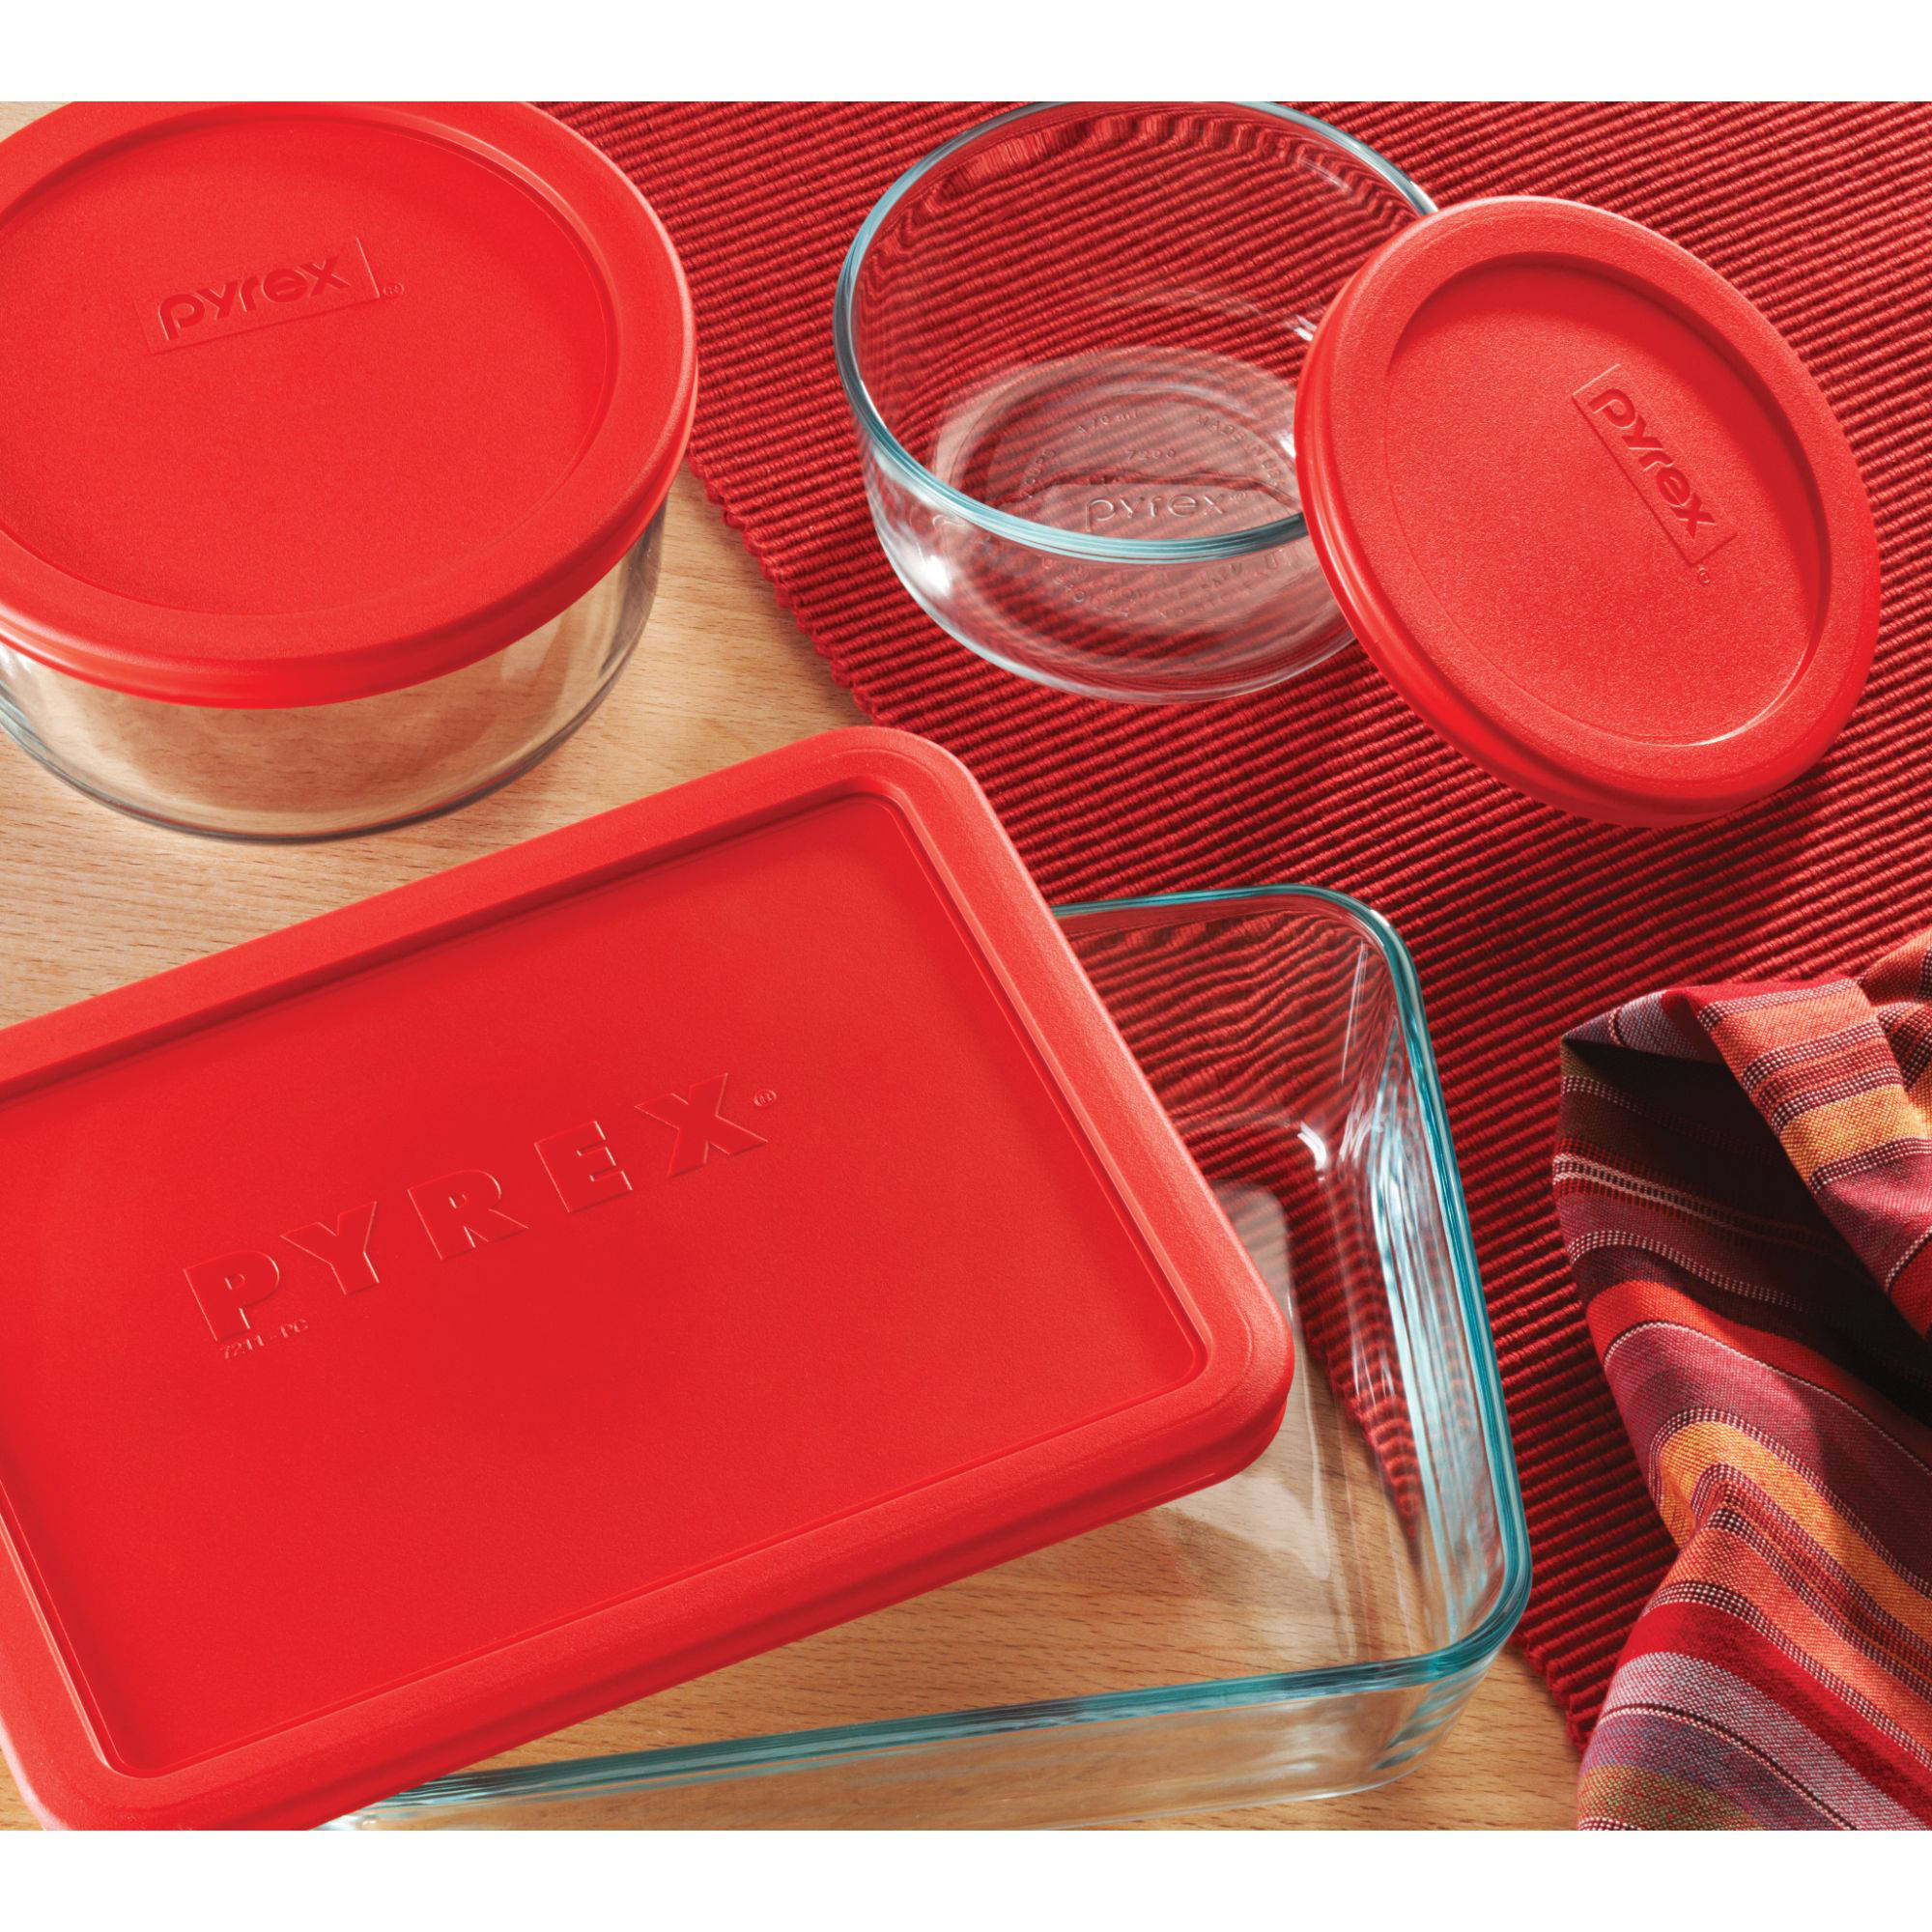 Pyrex 14 Piece Storage Plus Set   Walmart.com